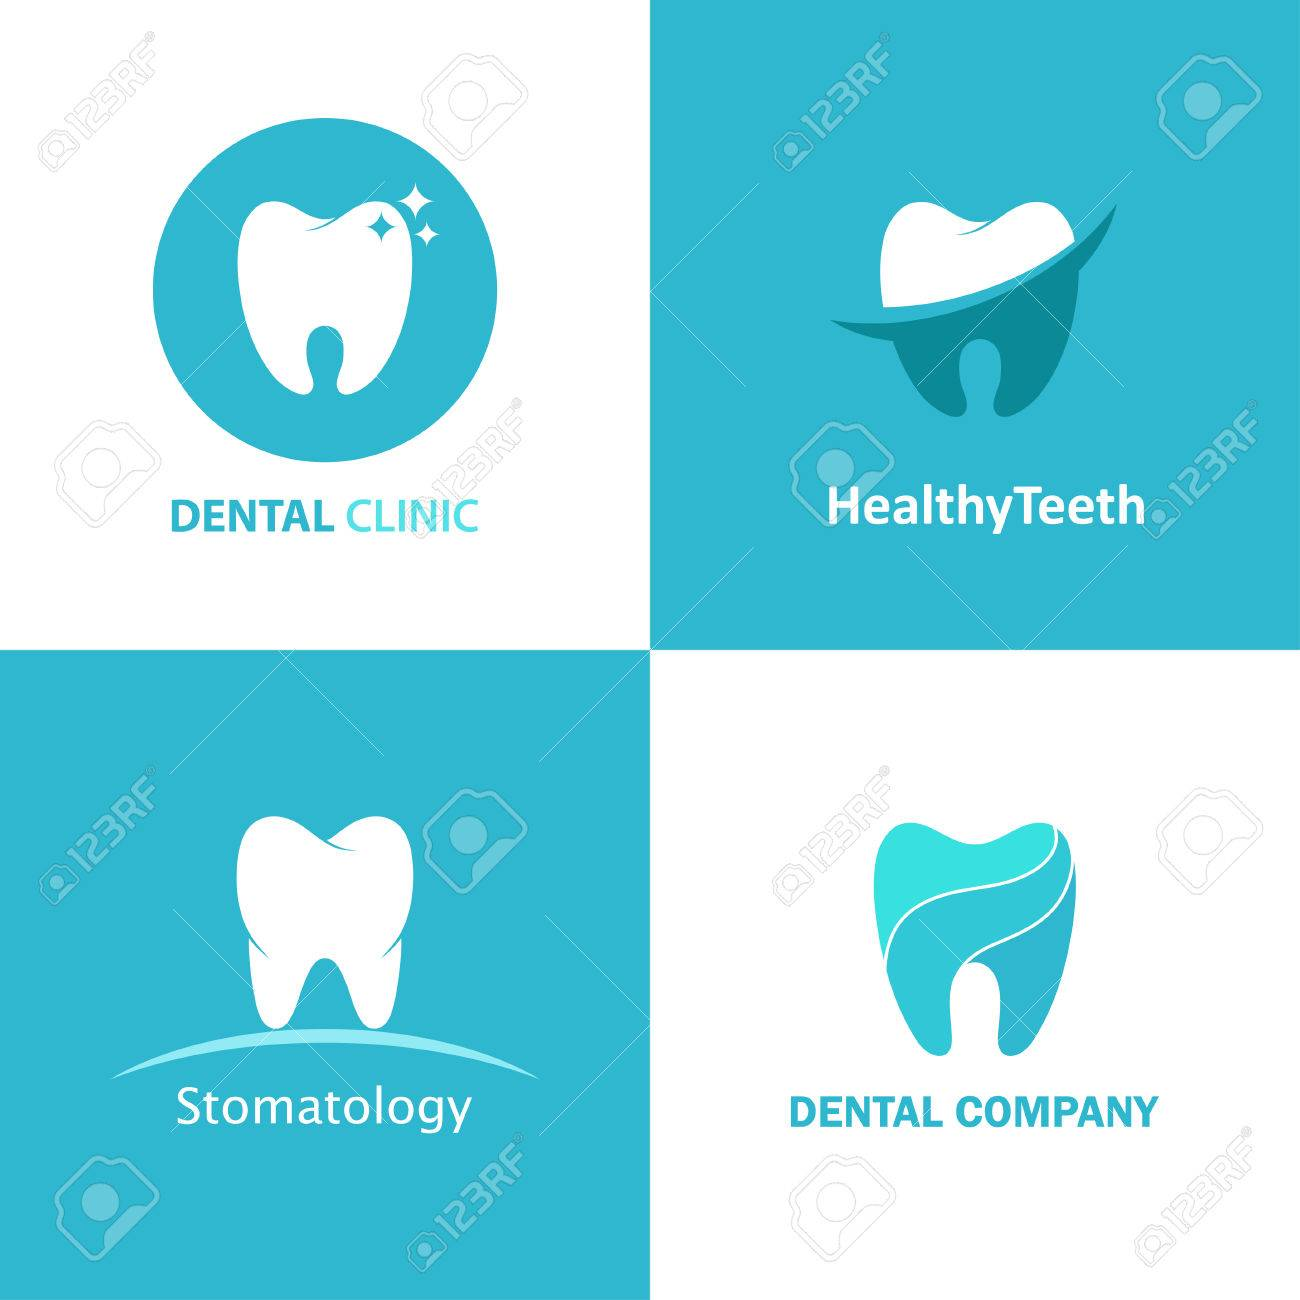 Logo Dental Clinic Vector Set Design Icons For Dentist Isolated Royalty Free Cliparts Vectors And Stock Illustration Image 68694901